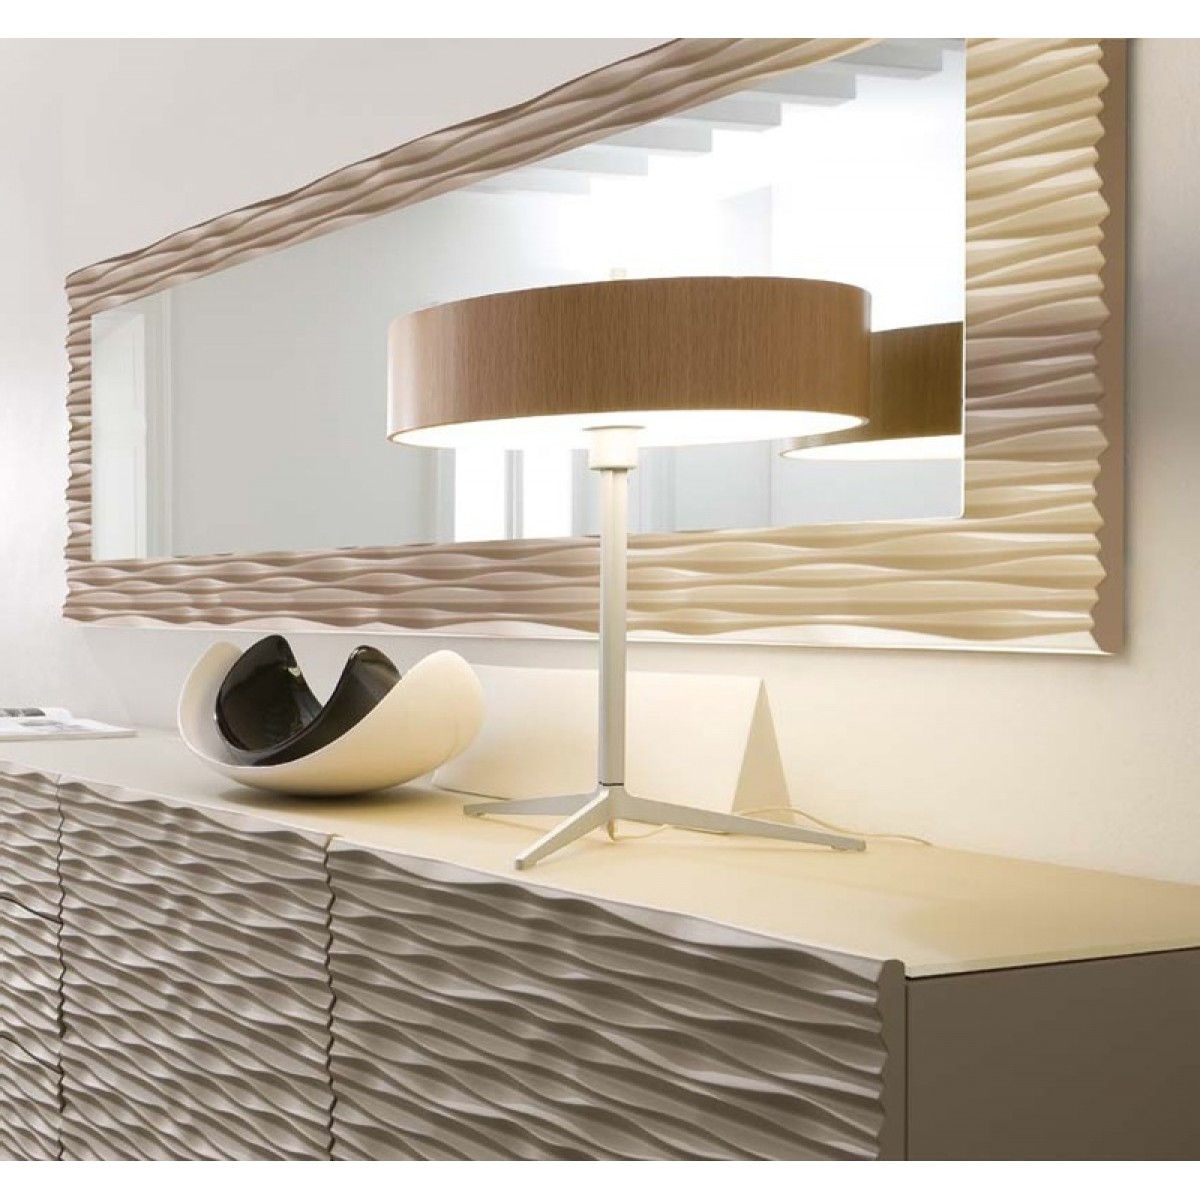 Brilliant Stylish Wall Mirrors That Look Like A Little Pertaining To Well Known Trendy Wall Mirrors (View 10 of 20)